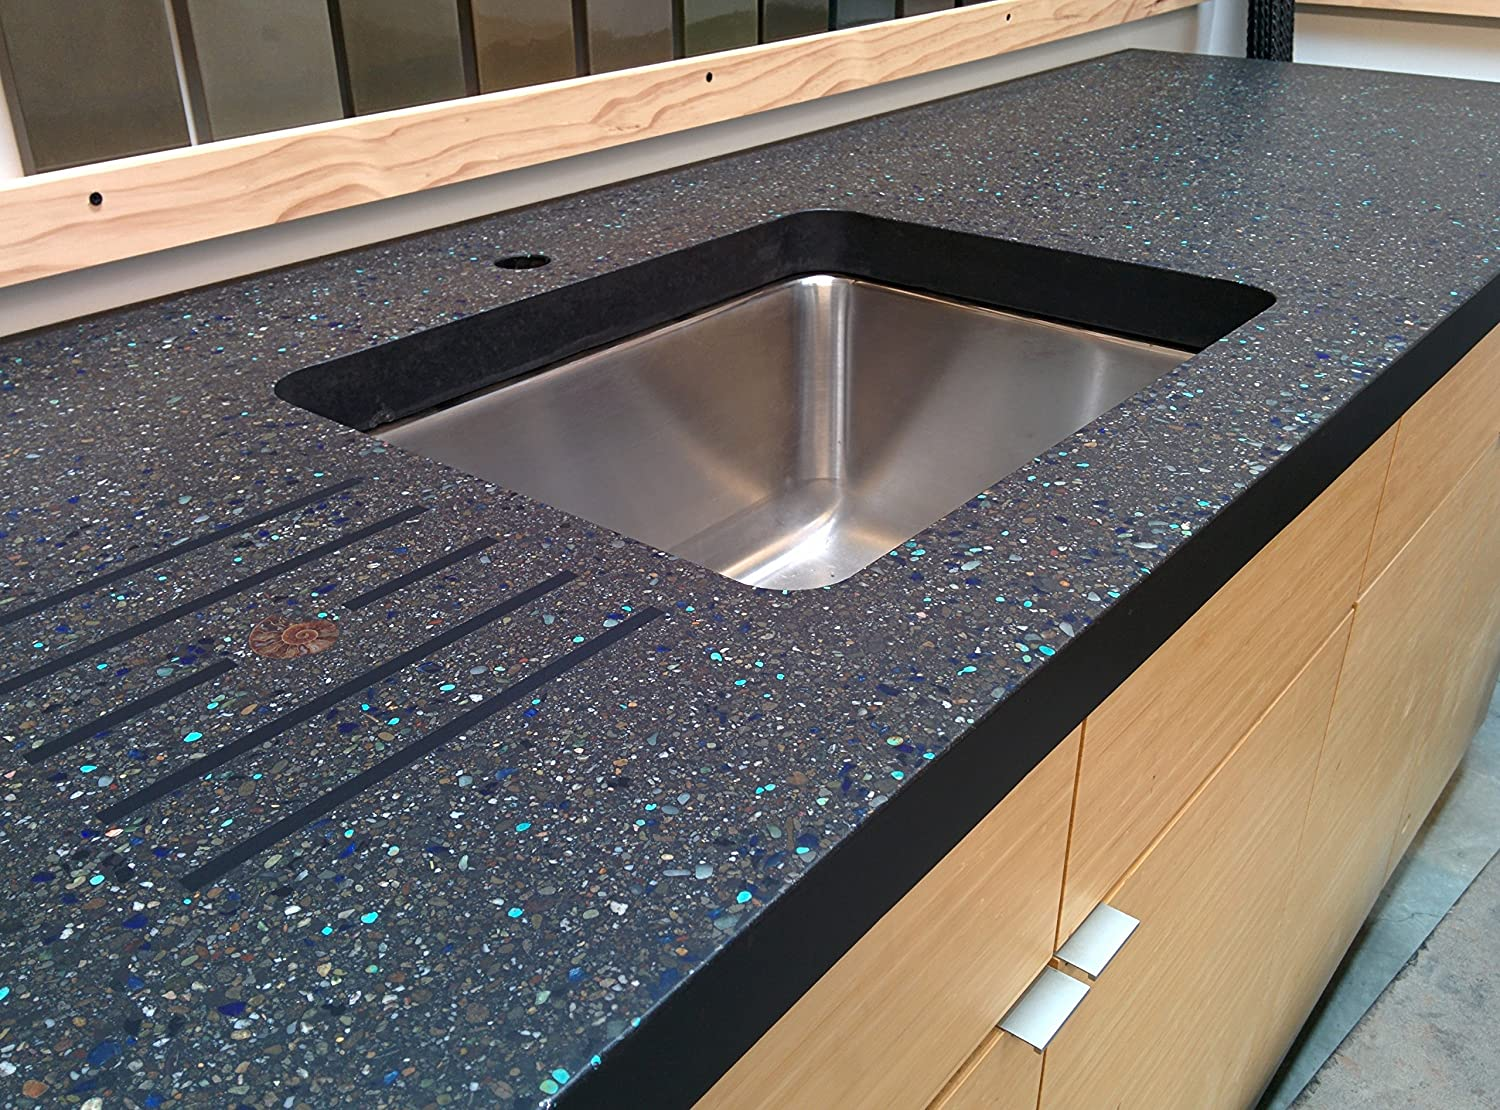 Cheng Concrete Countertop Pro-Formula Mix - Charcoal